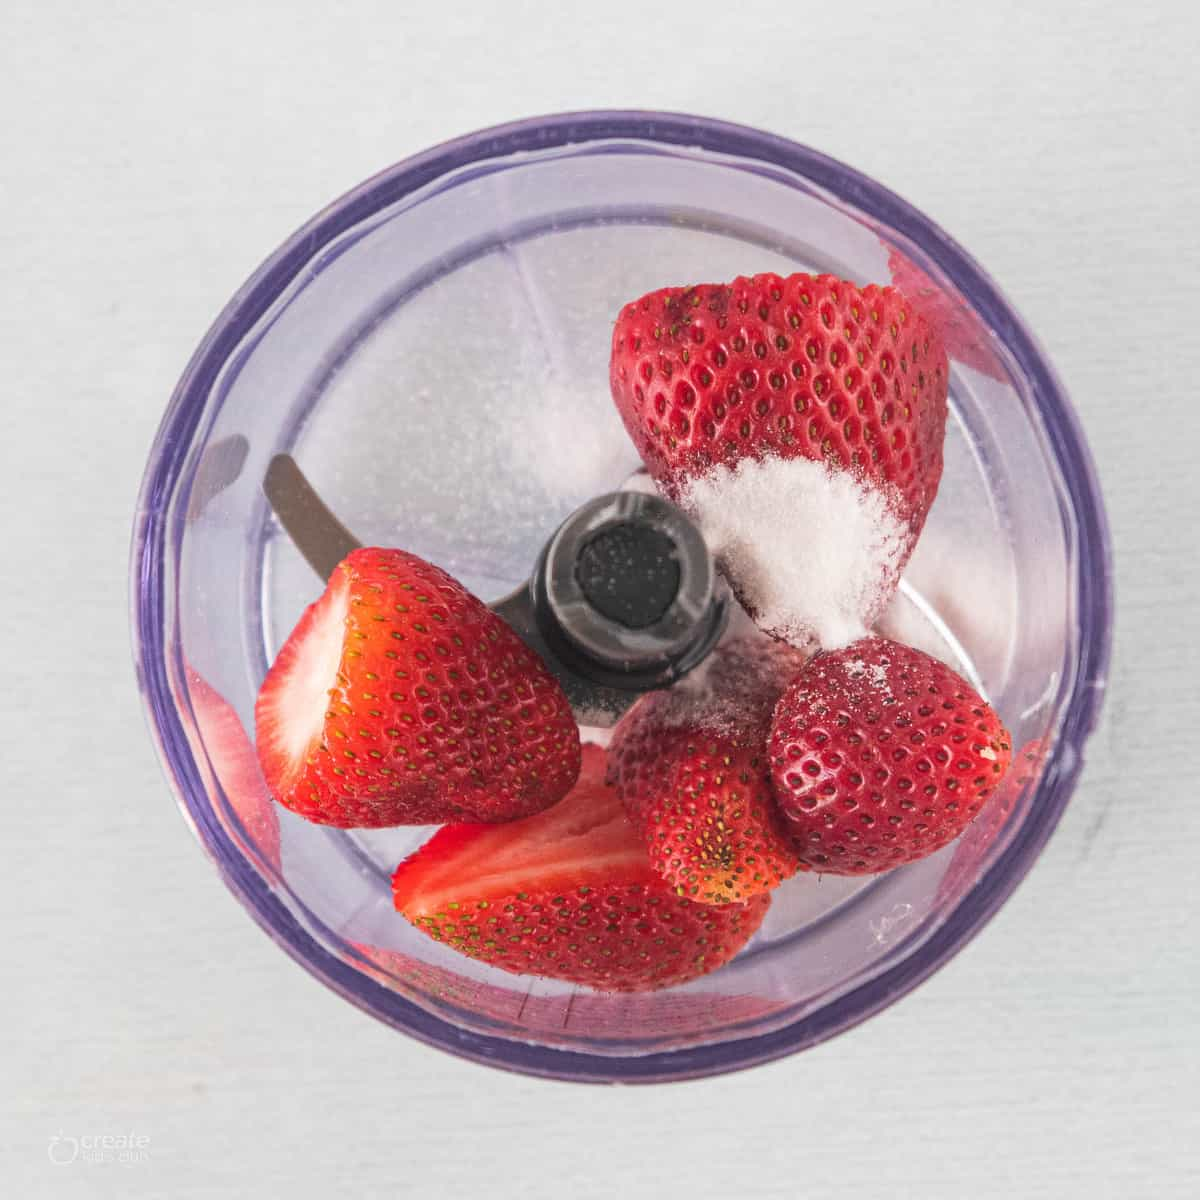 Strawberries and sugar in a blender.